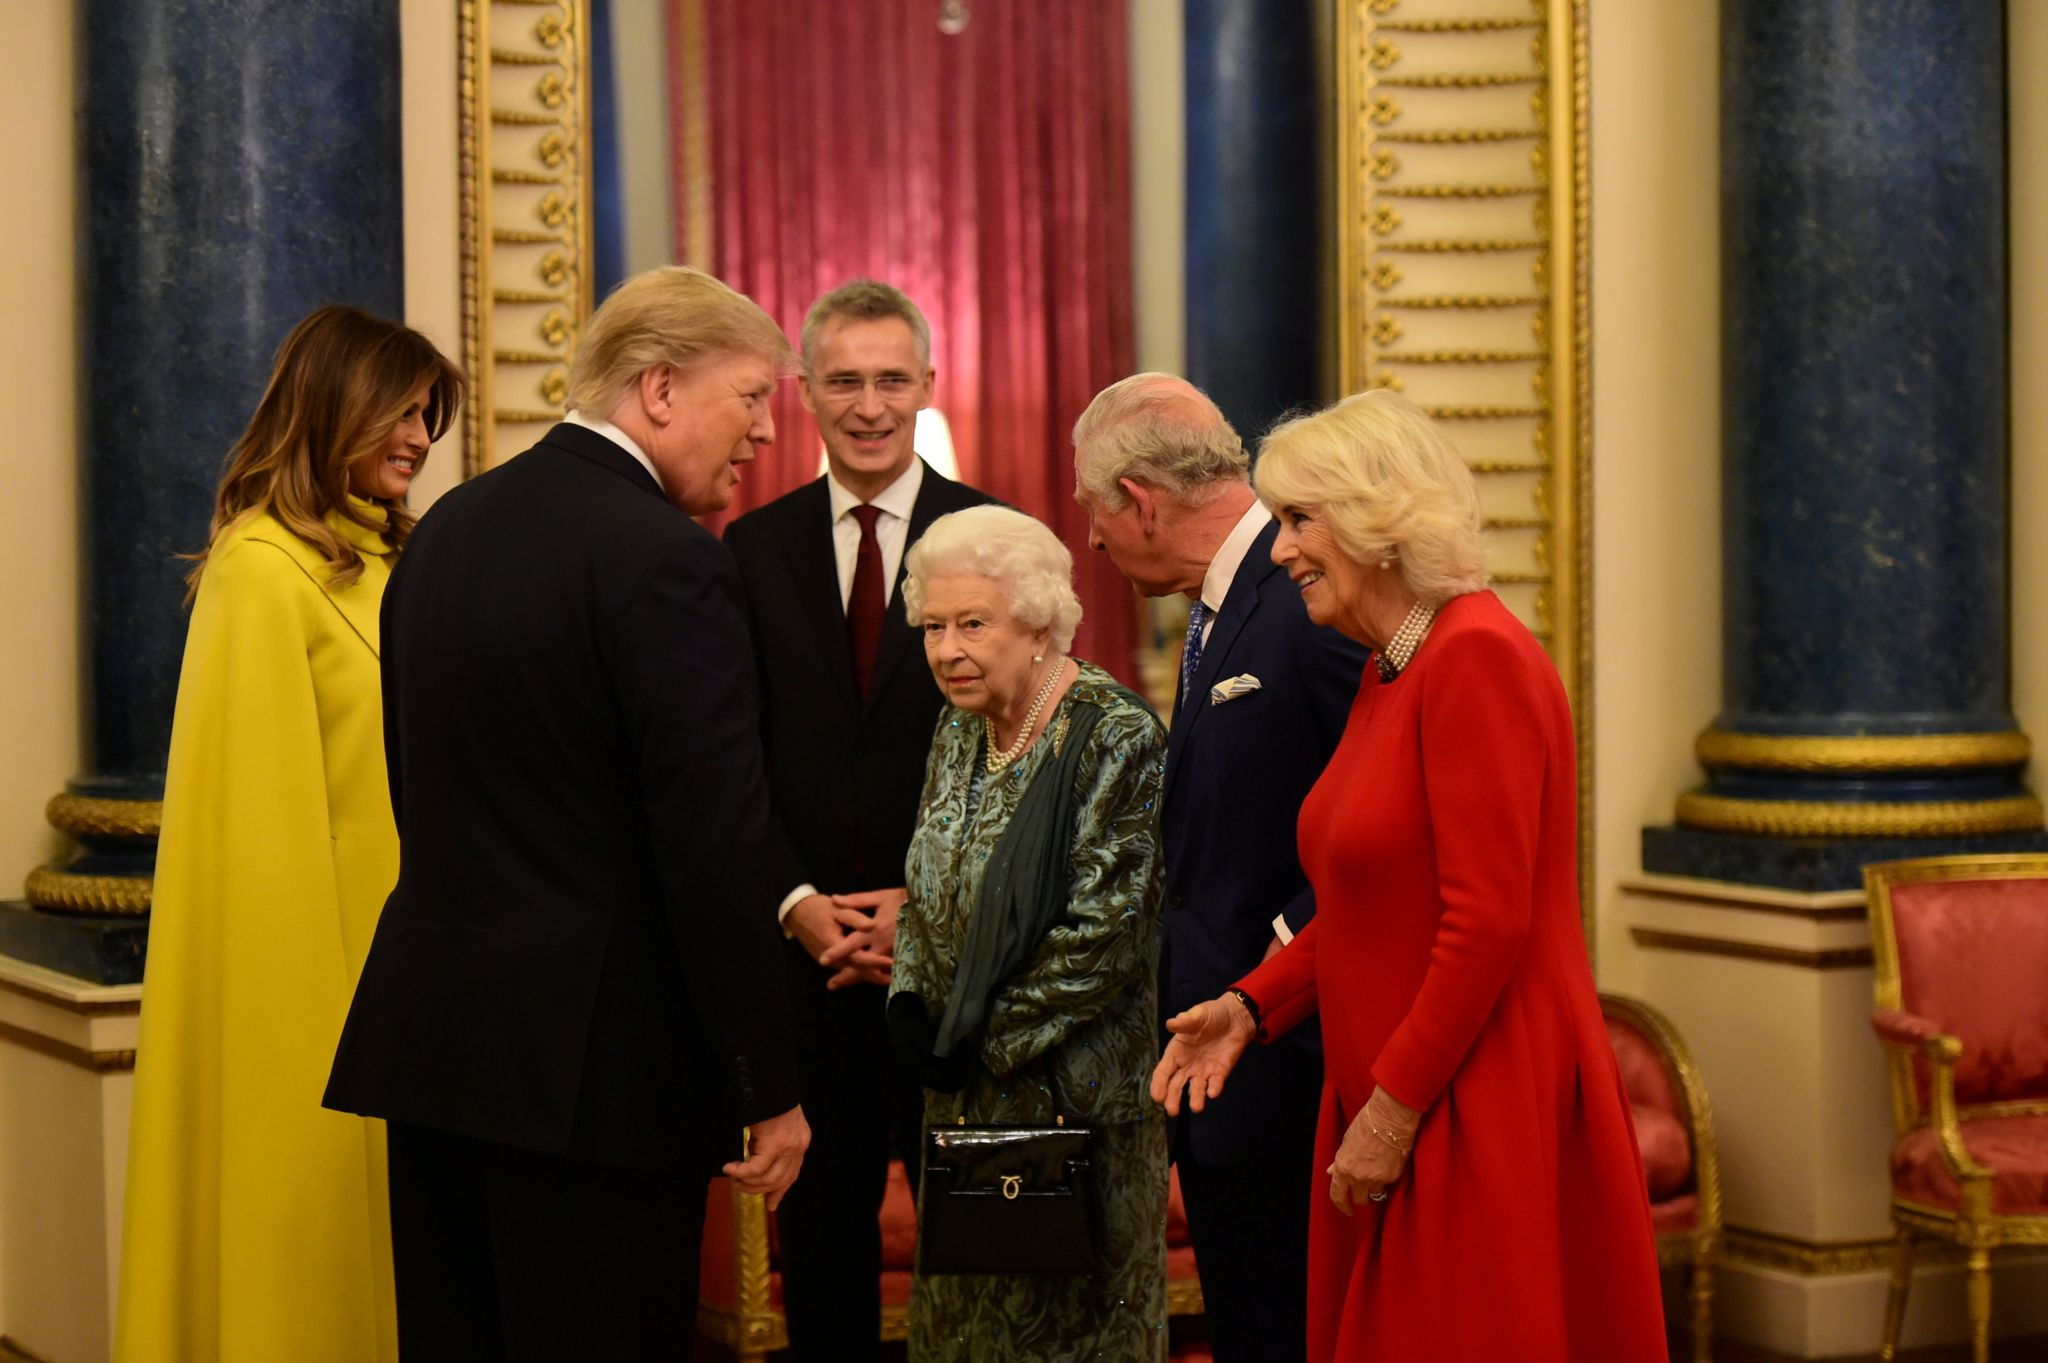 Donald and Melania Trump meet the Queen, alongside Prince Charles and the Duchess of Cornwall at Buckingham Palace